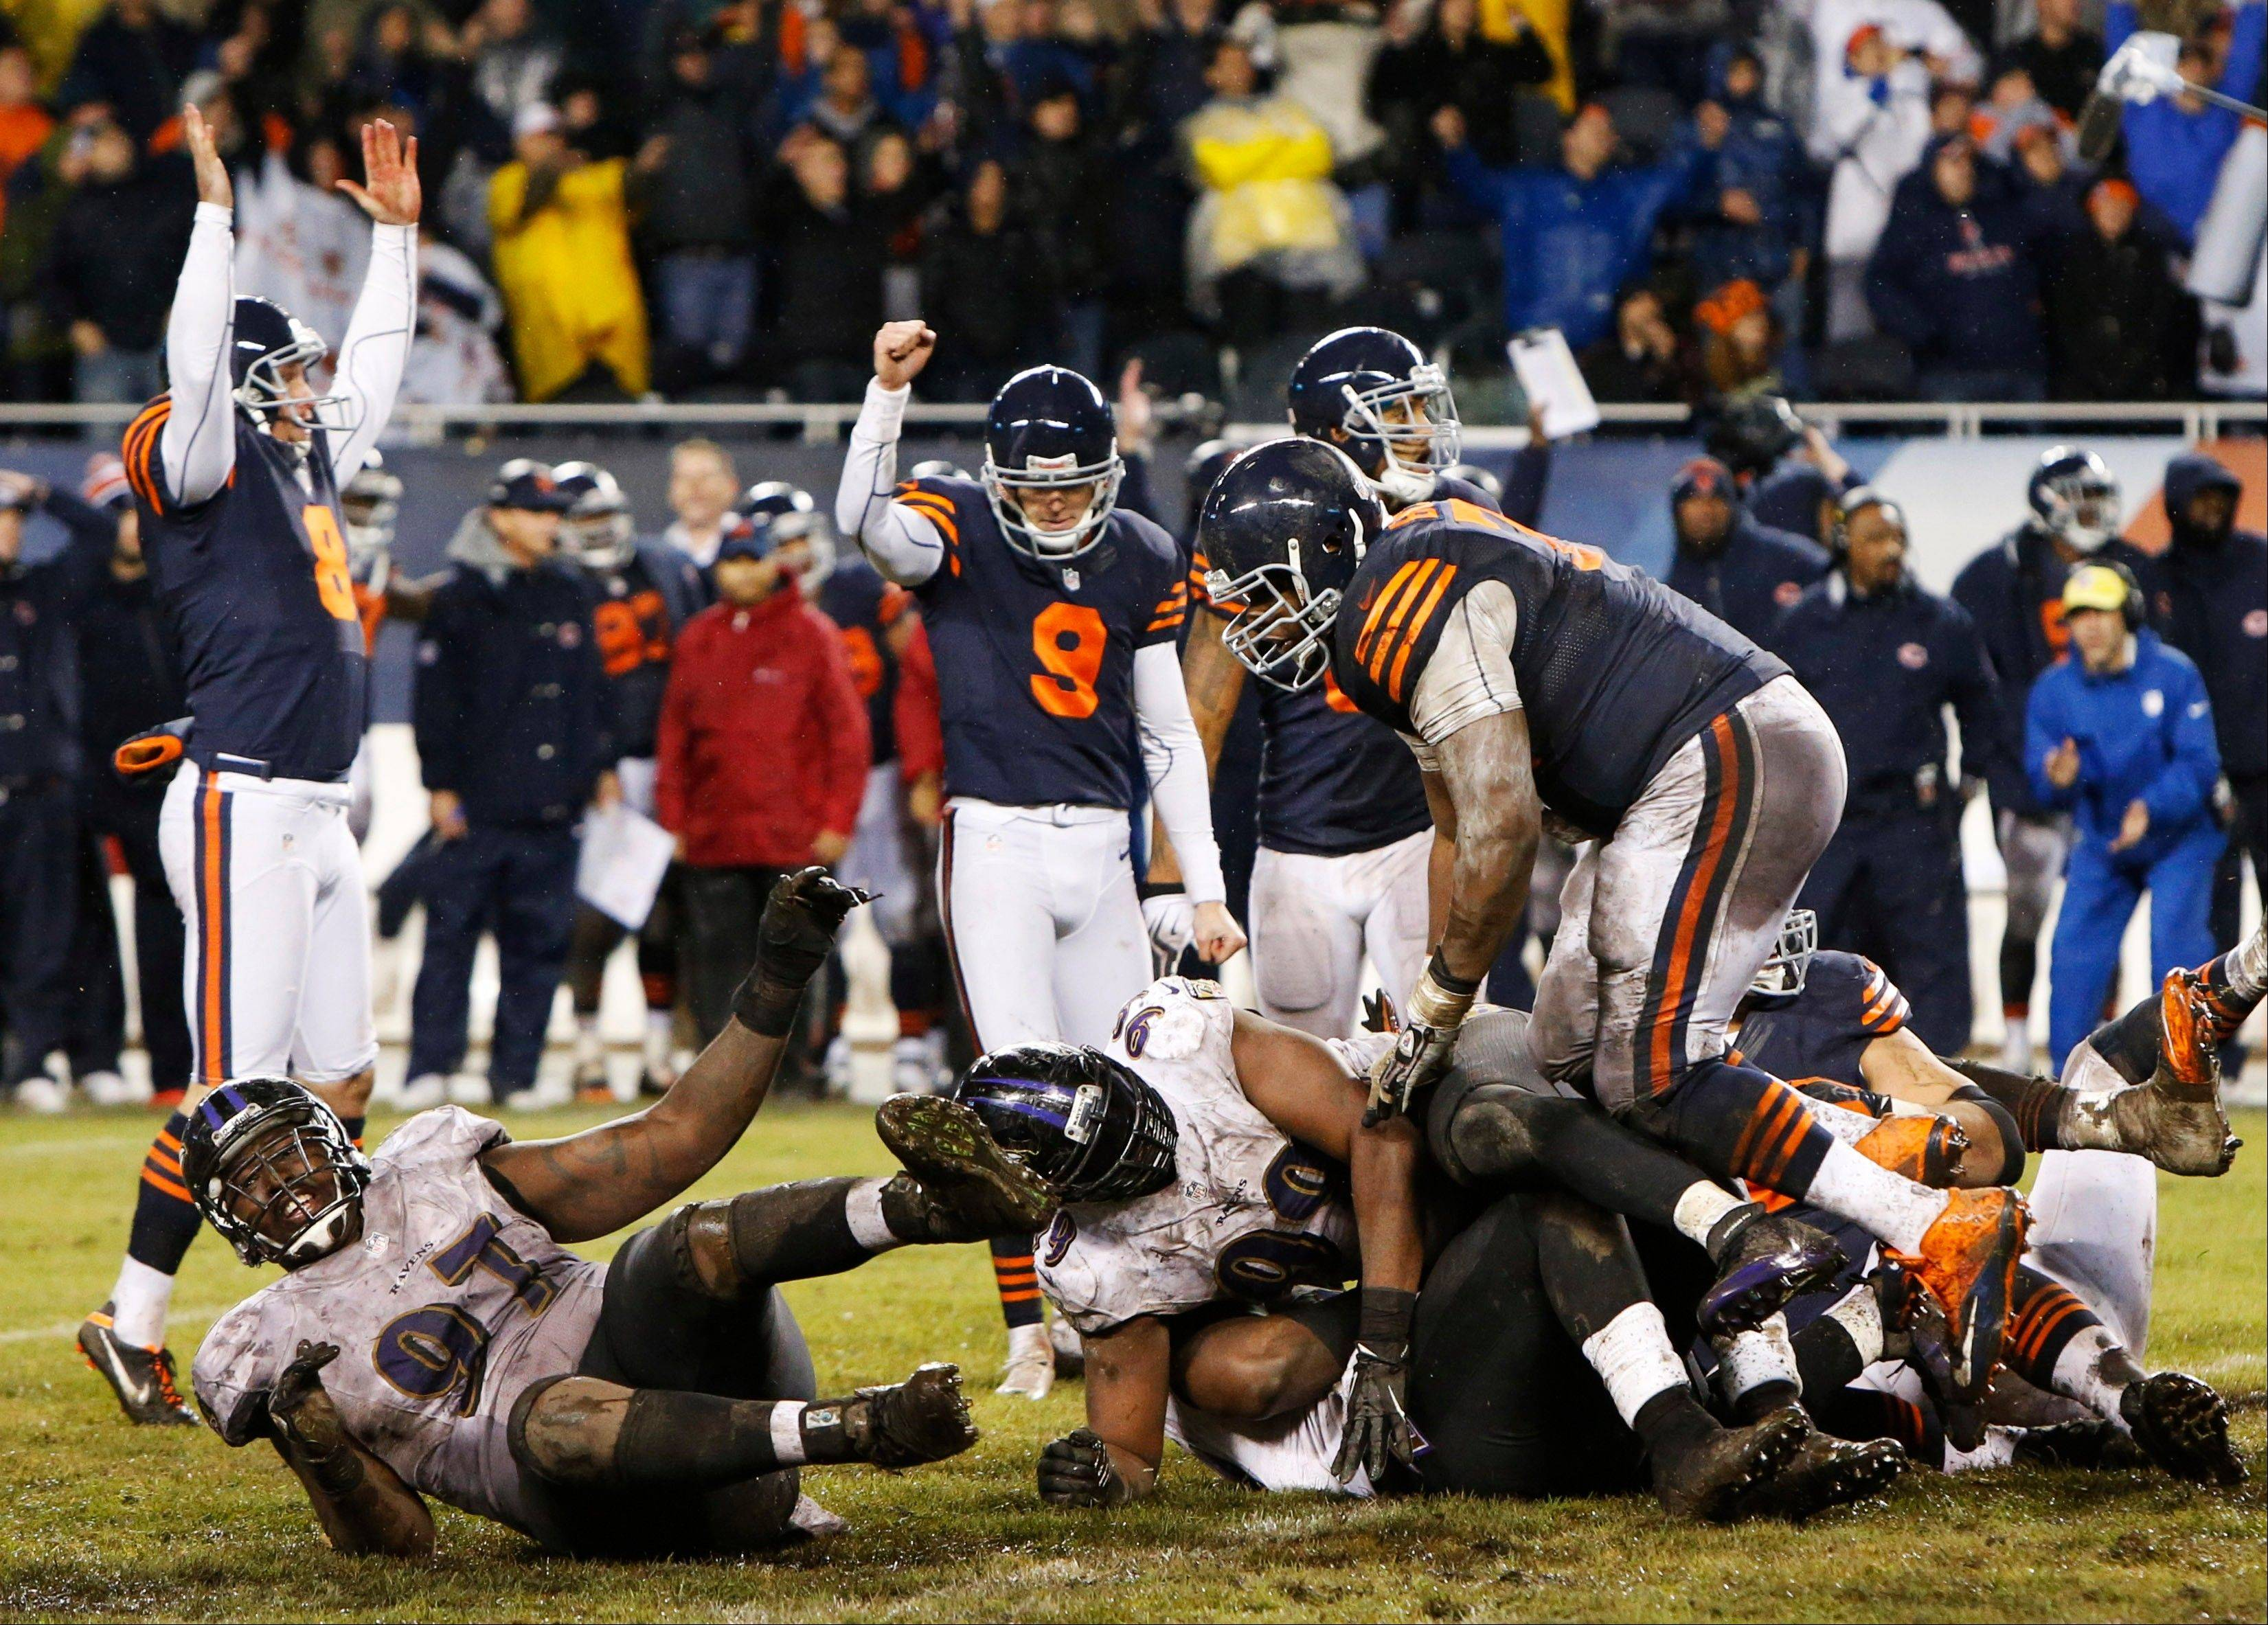 Chicago Bears kicker Robbie Gould (9) celebrates after booting the game-winning field goal in overtime to beat the Baltimore Ravens 23-20 in an NFL football game Sunday, Nov. 17, 2013, in Chicago.